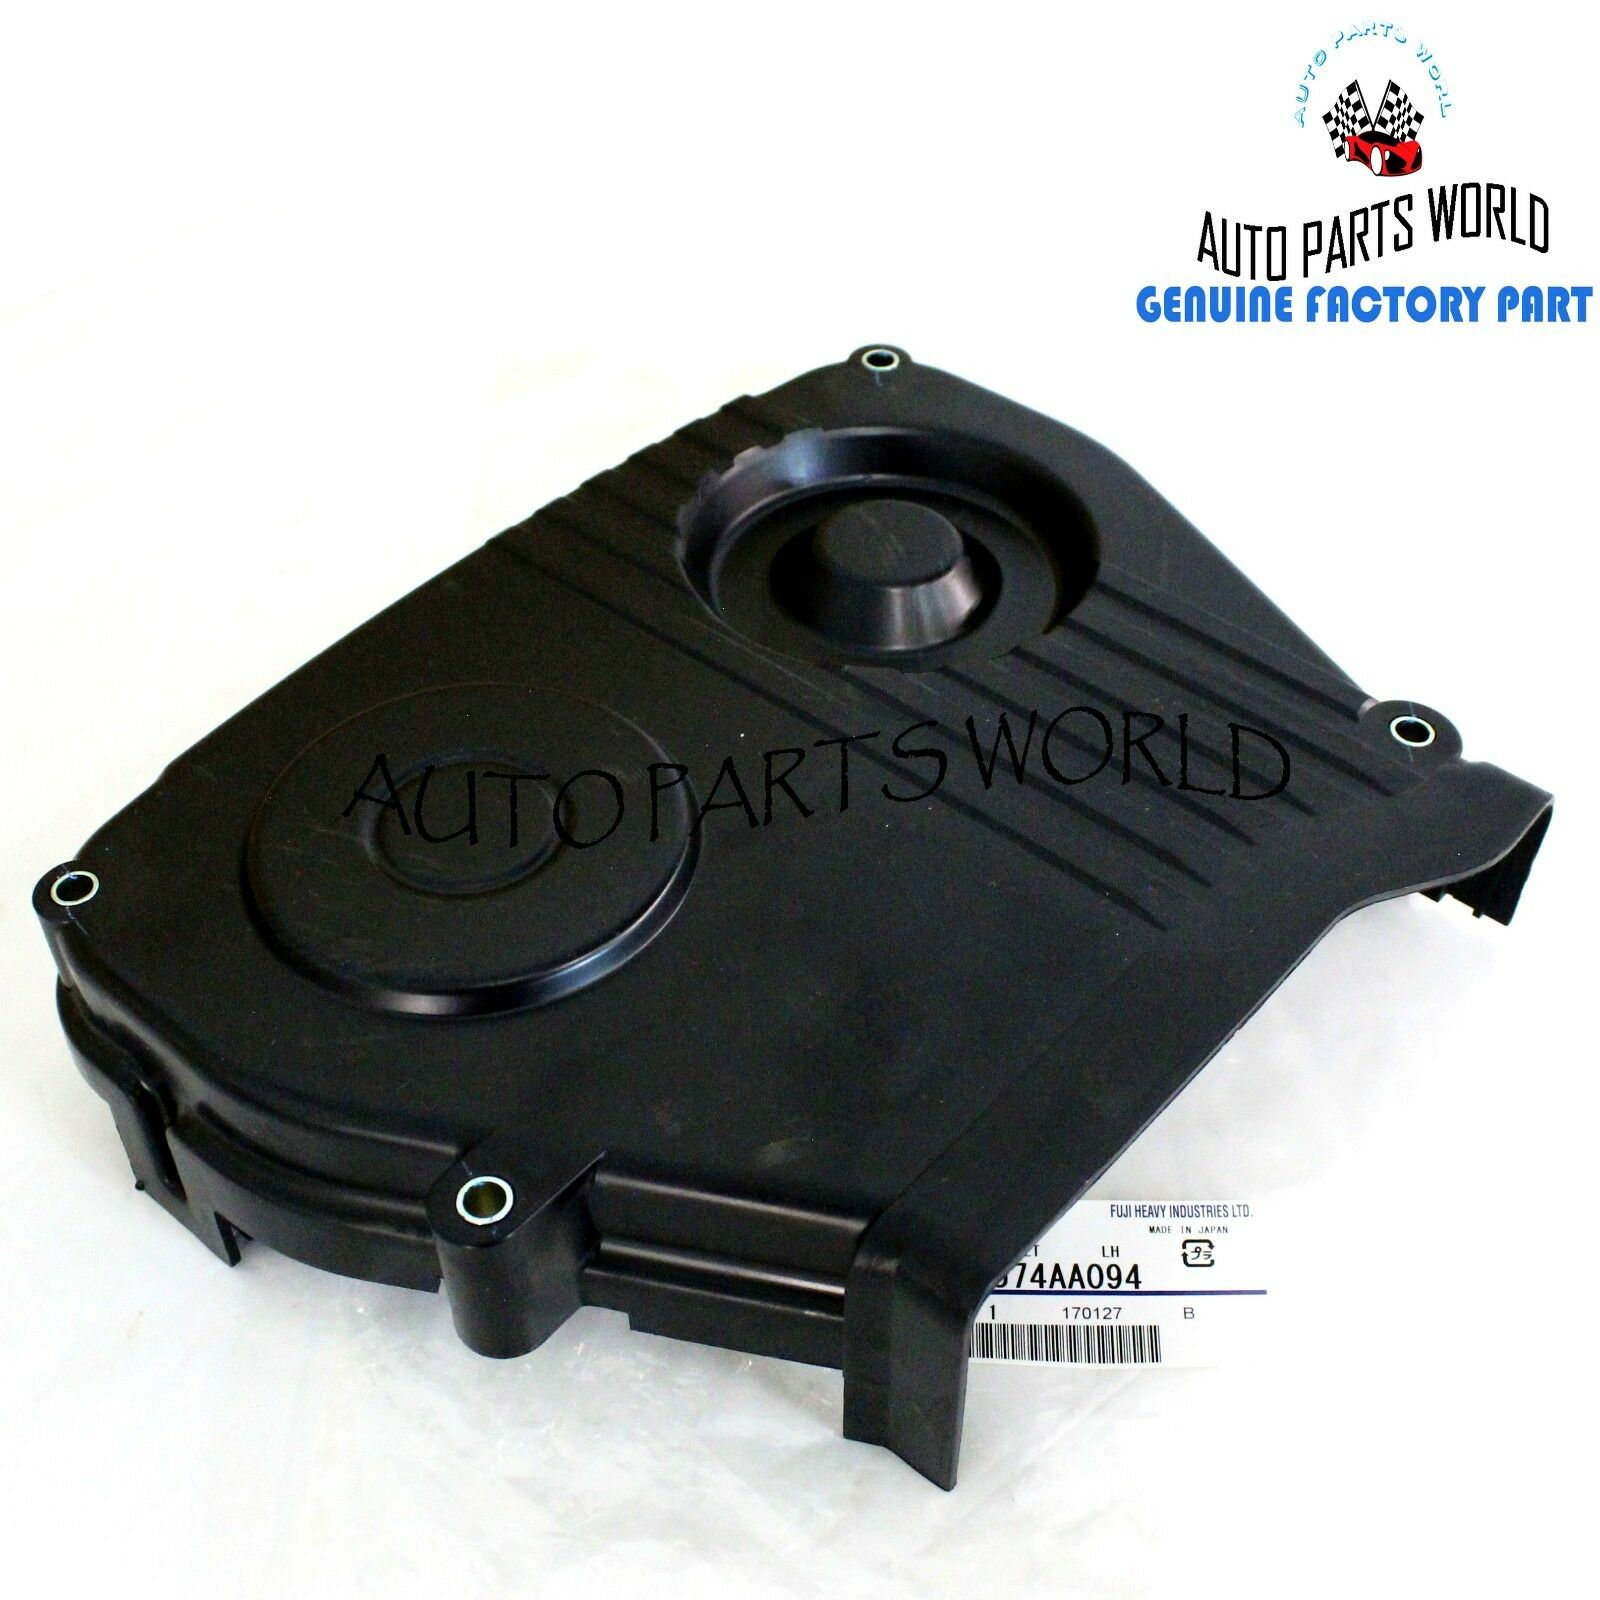 Genuine Subaru Left Front Outer Timing Cover Wrx Sti Turbo Ej205 Engine Diagram Norton Secured Powered By Verisign